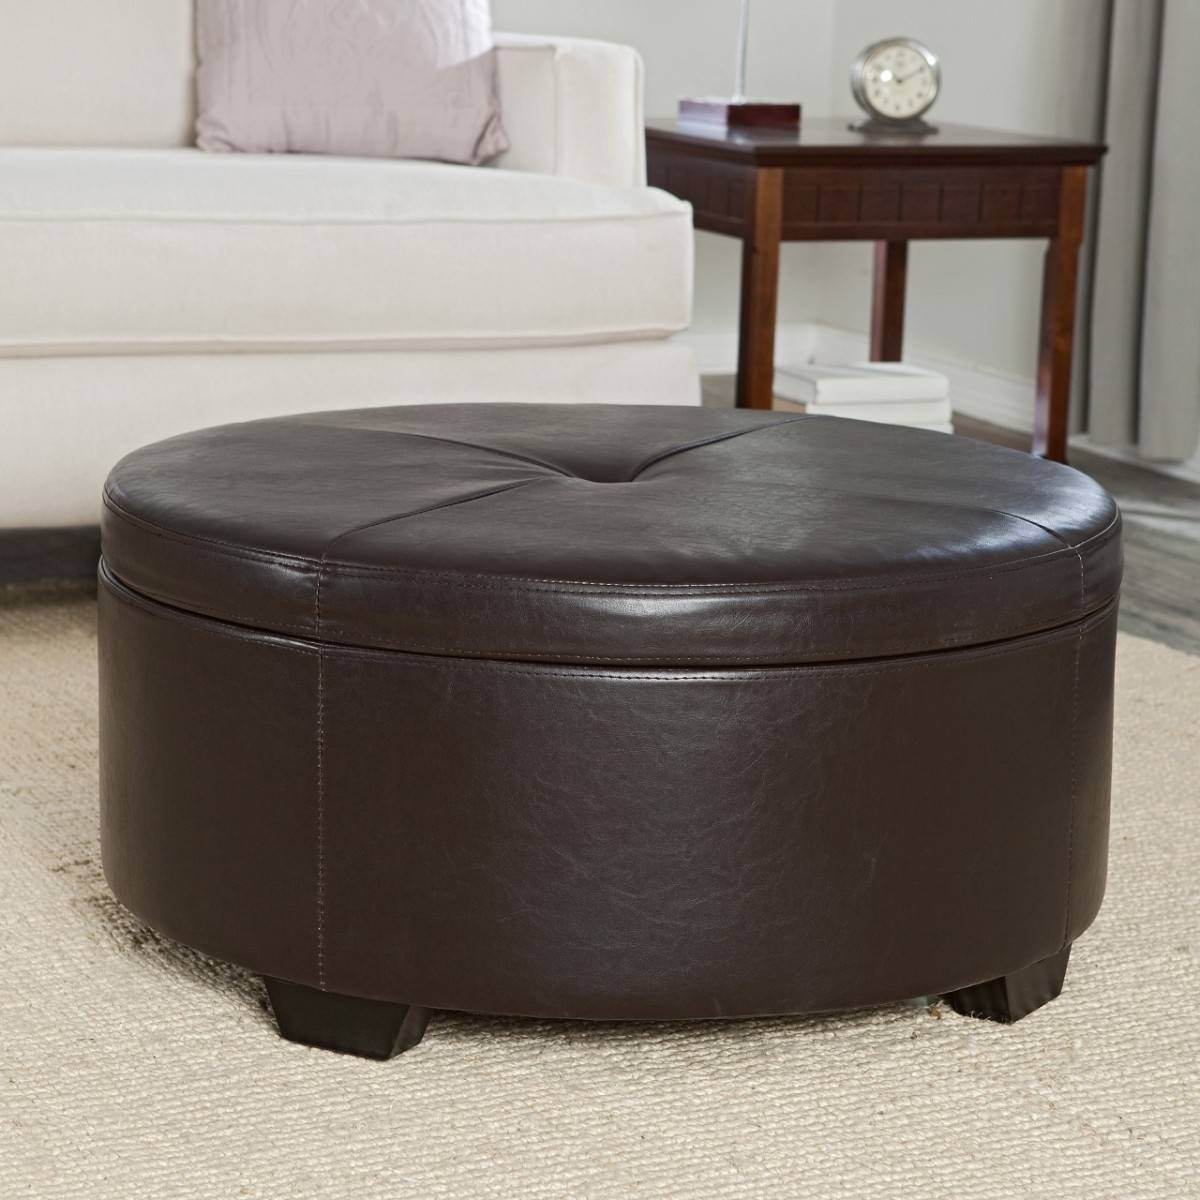 Round Ottoman Coffee Table With Storage - Starrkingschool within Round Coffee Table Storages (Image 27 of 30)